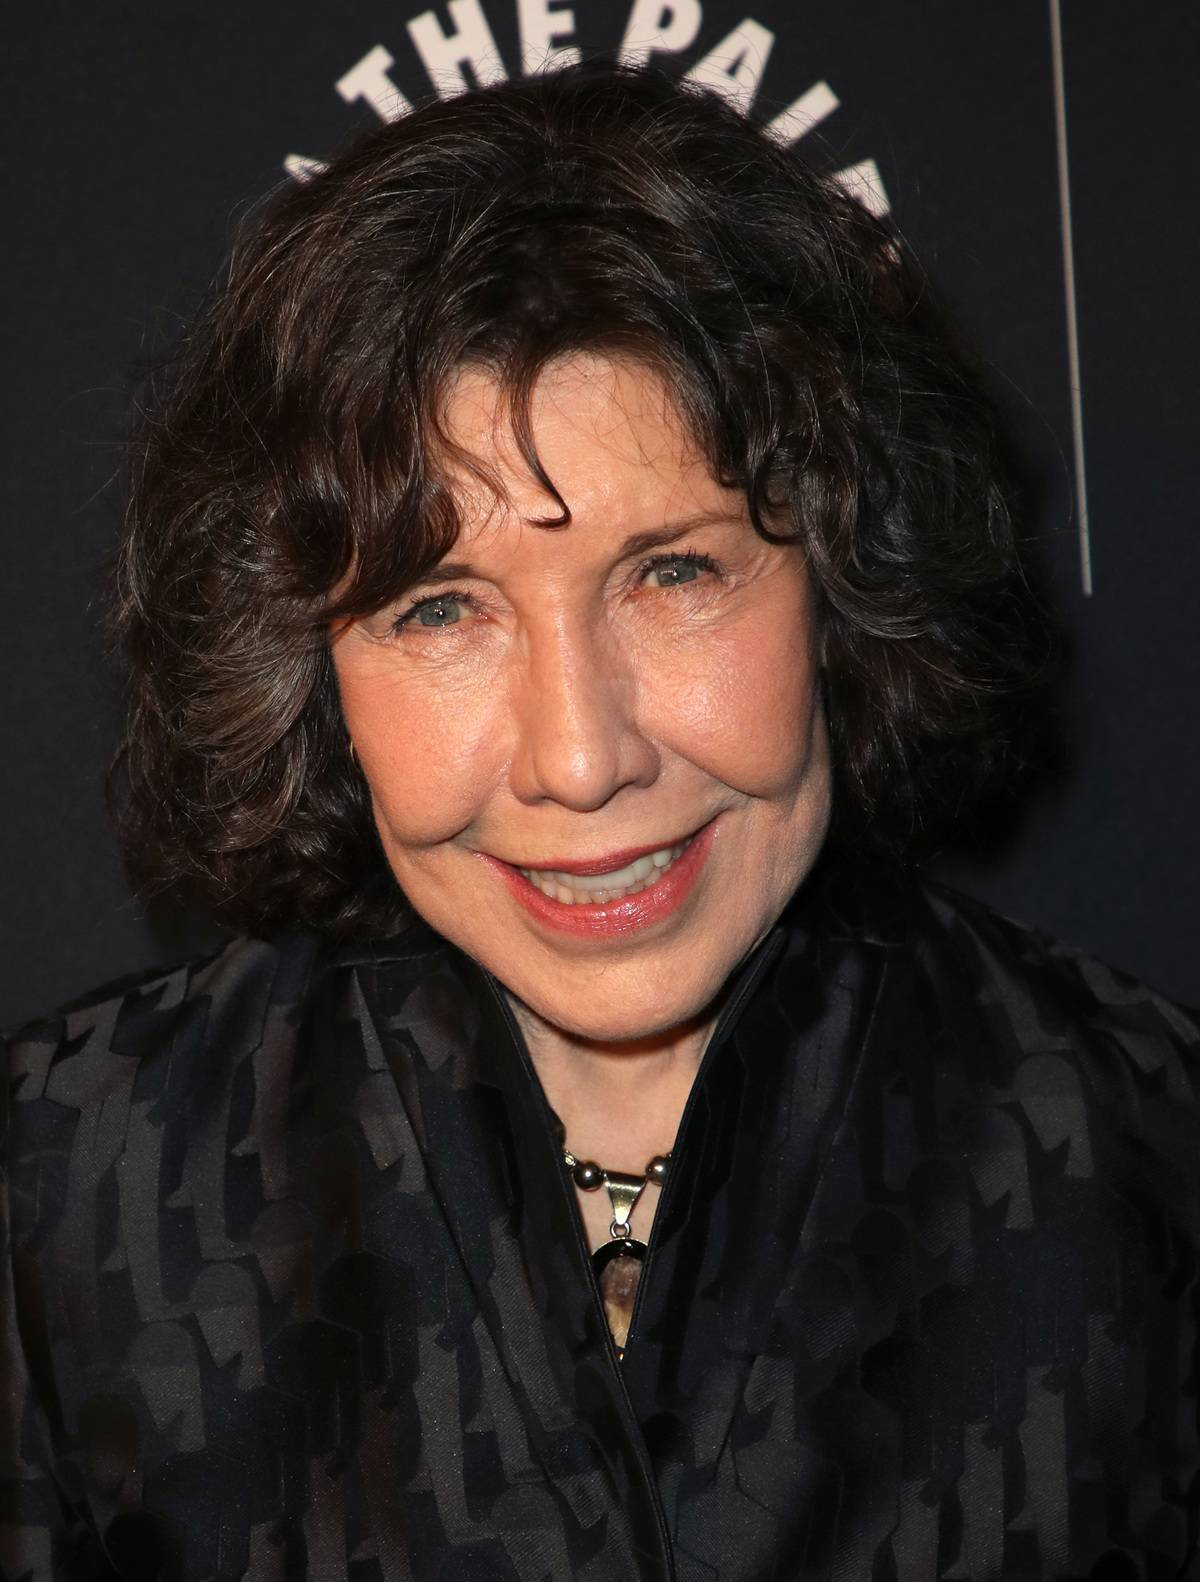 BEVERLY HILLS, CALIFORNIA - NOVEMBER 21: Lily Tomlin attends The Paley Honors: A Special Tribute To Television's Comedy Legends at the Beverly Wilshire Four Seasons Hotel on November 21, 2019 in Beverly Hills, California. (